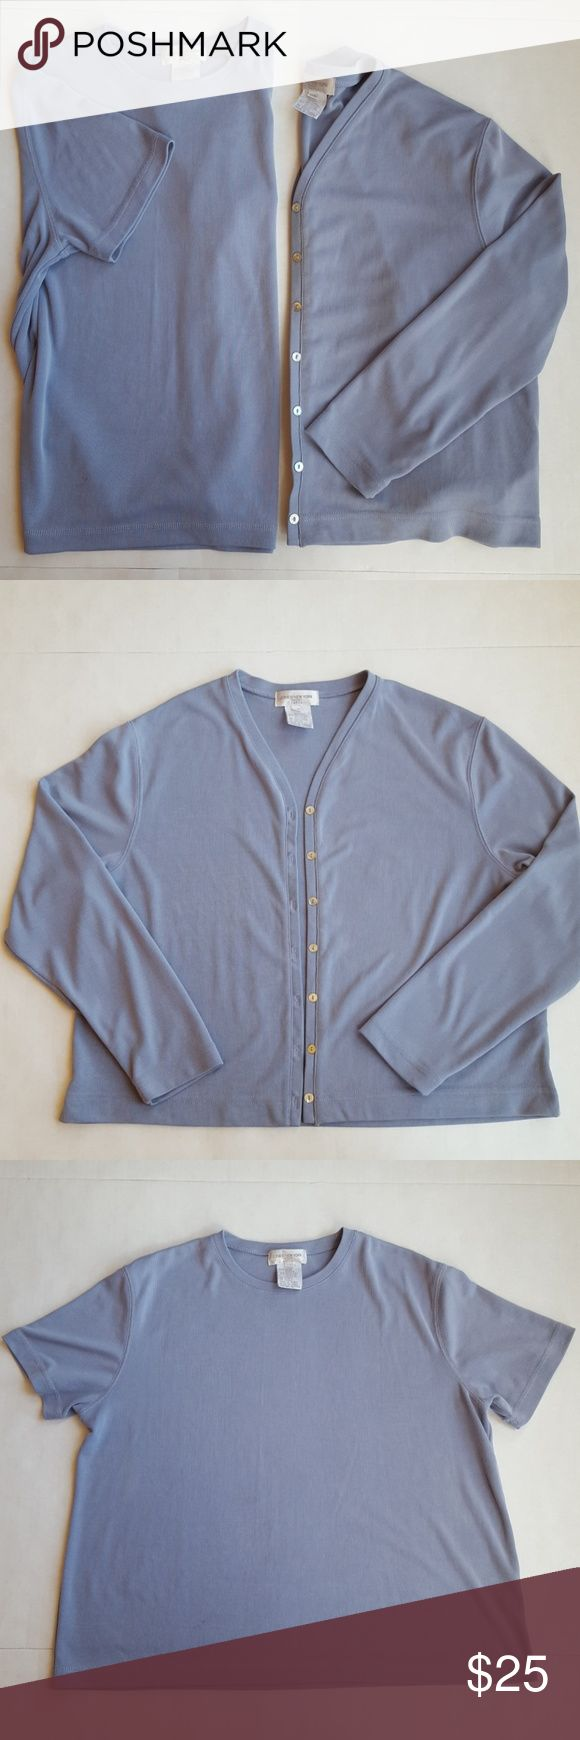 Jones of New York blue Short Sleeve Top & Jacket Petite Jones of New York Sport Short Sleeve Top with matching long sleeve jacket. Blue / Lilac in color. Great to wear and add the jacket for chilly nights. Used Condition. 65% Rayon, 35% Polyester. Approximate measurements in listing Jones New York Tops Blouses